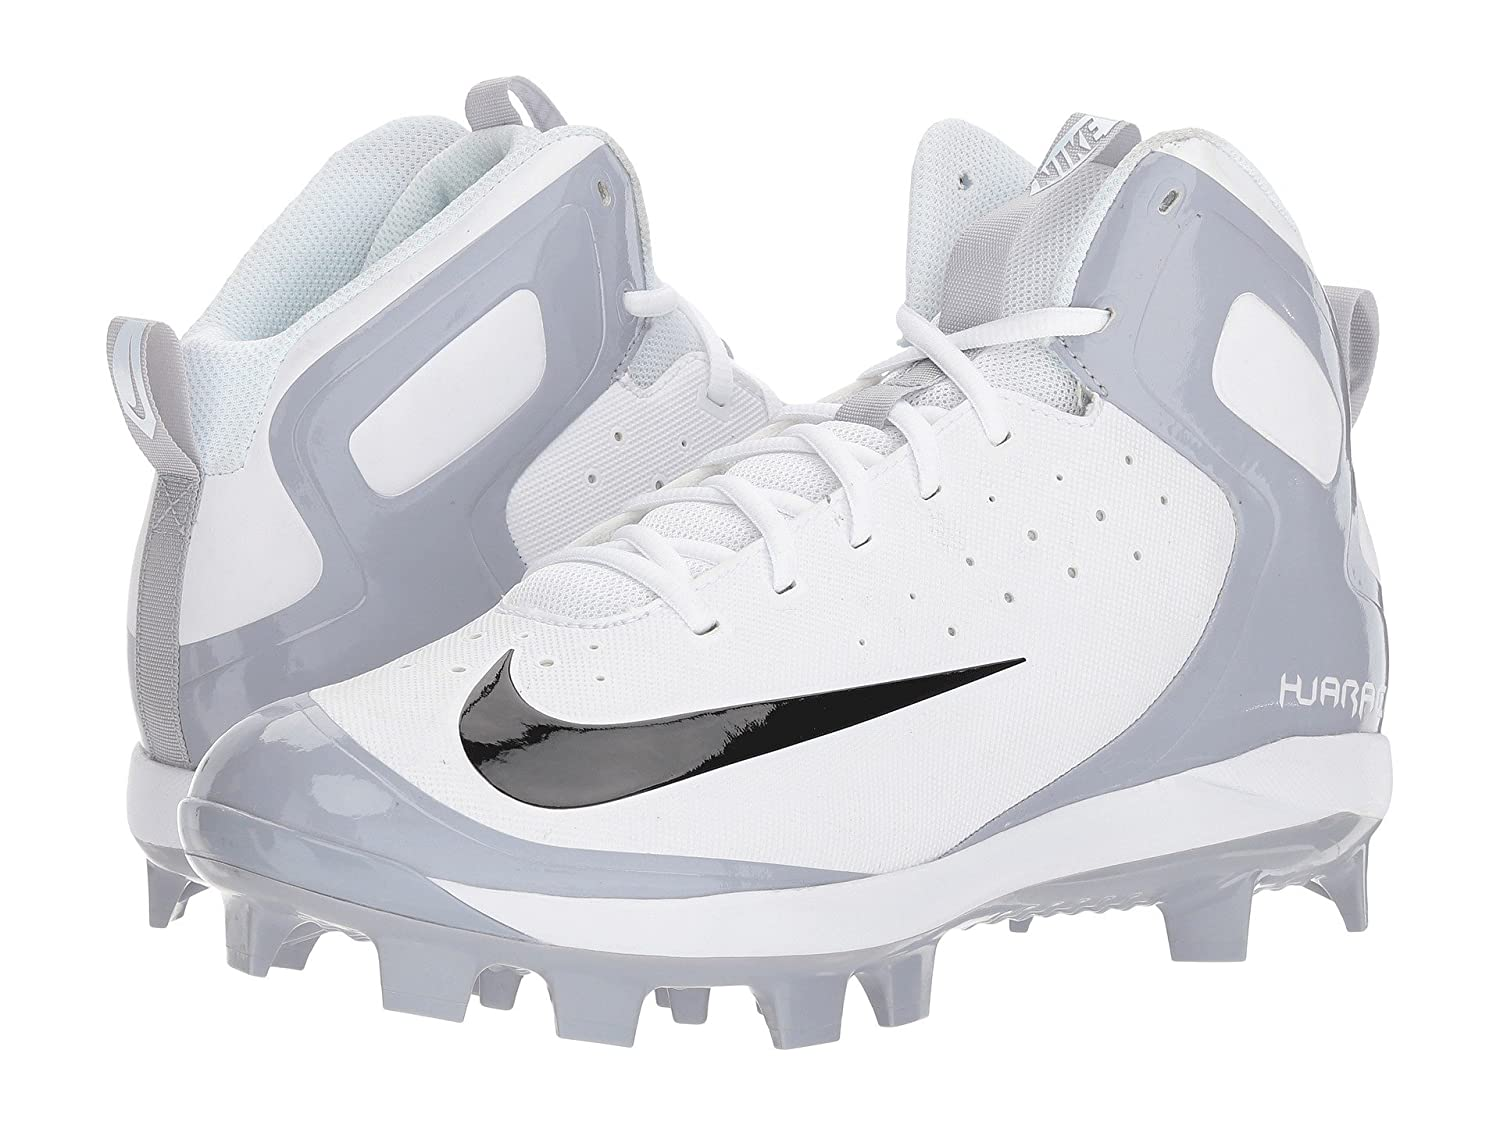 (ナイキ) NIKE メンズ野球ベースボールシューズ靴 Alpha Huarache Pro Mid MCS White/Black/Wolf Grey 9 (27cm) D Medium B078Q1QTK4